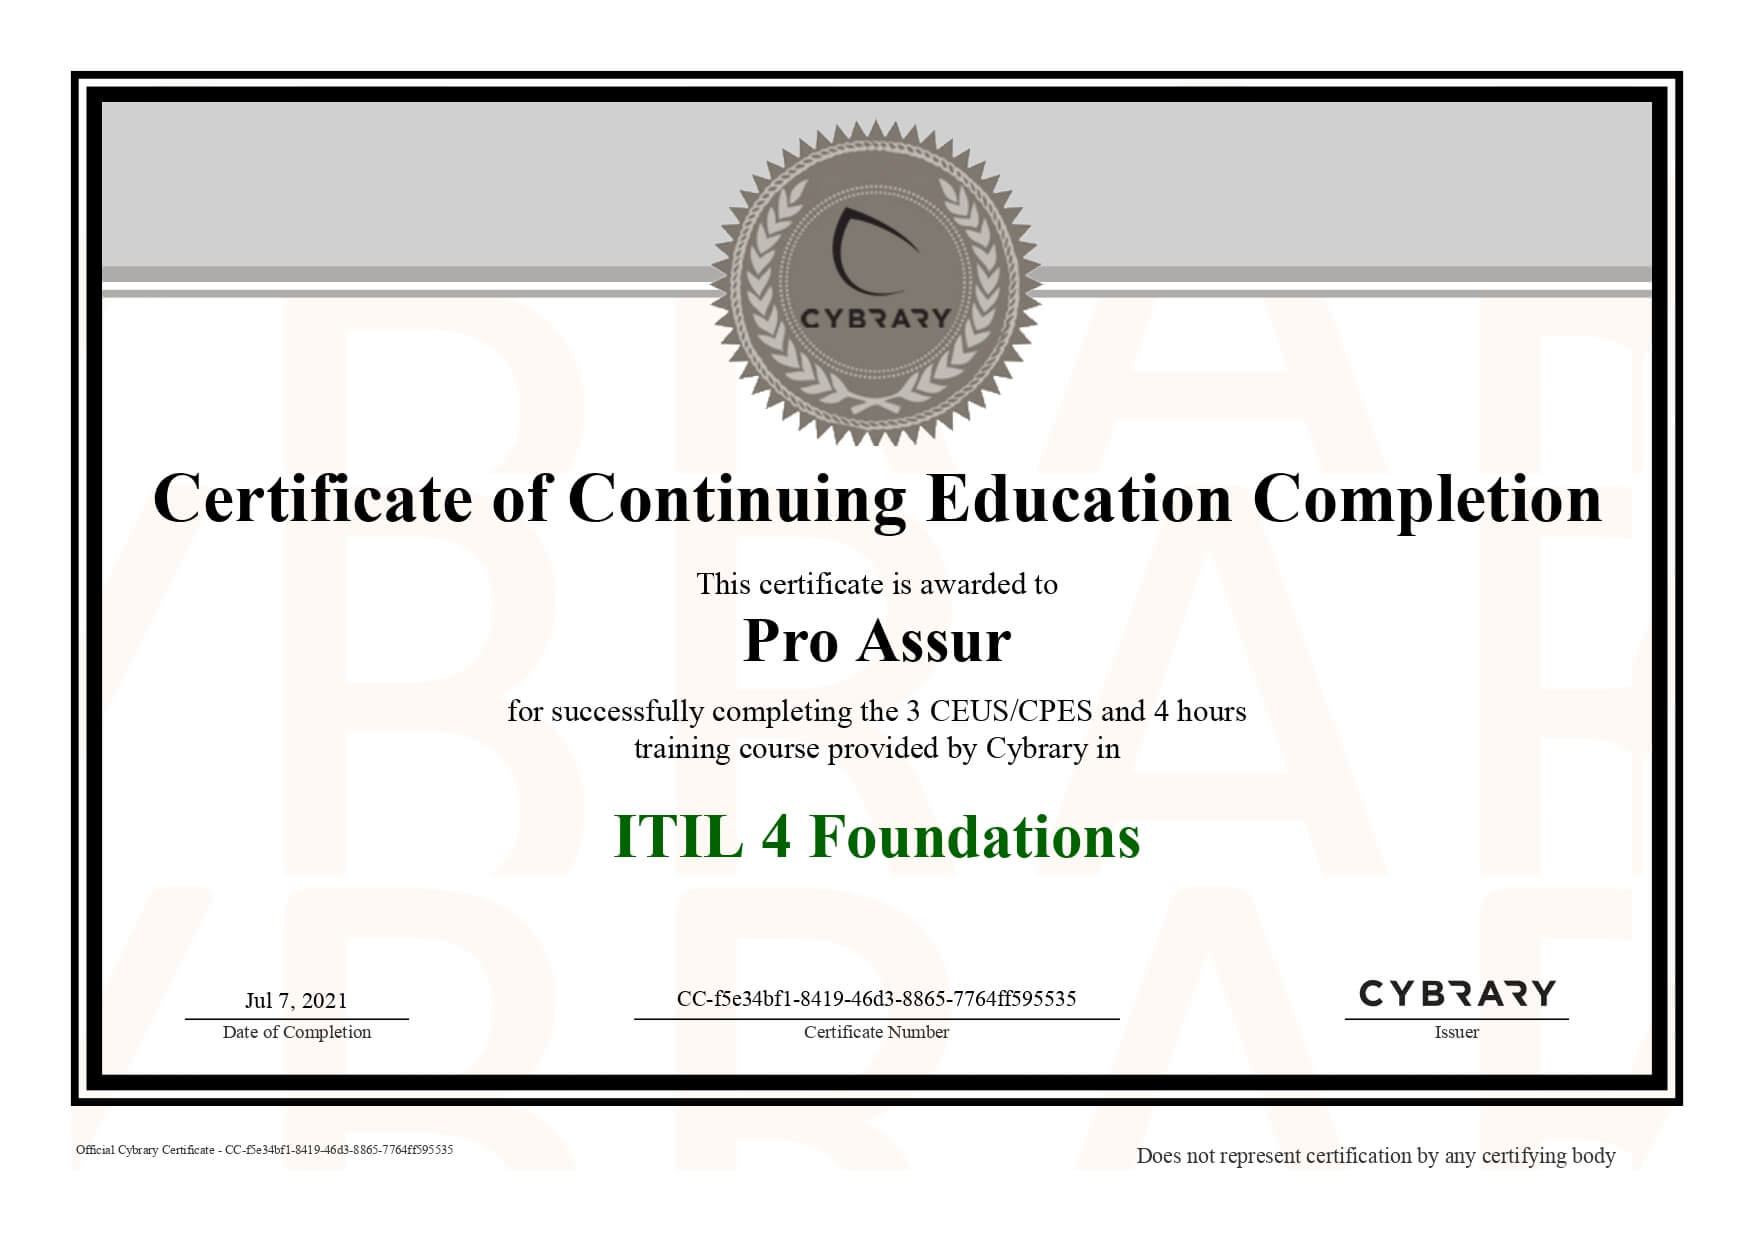 cybrary-cert-fundamental-cryptography-data-protection